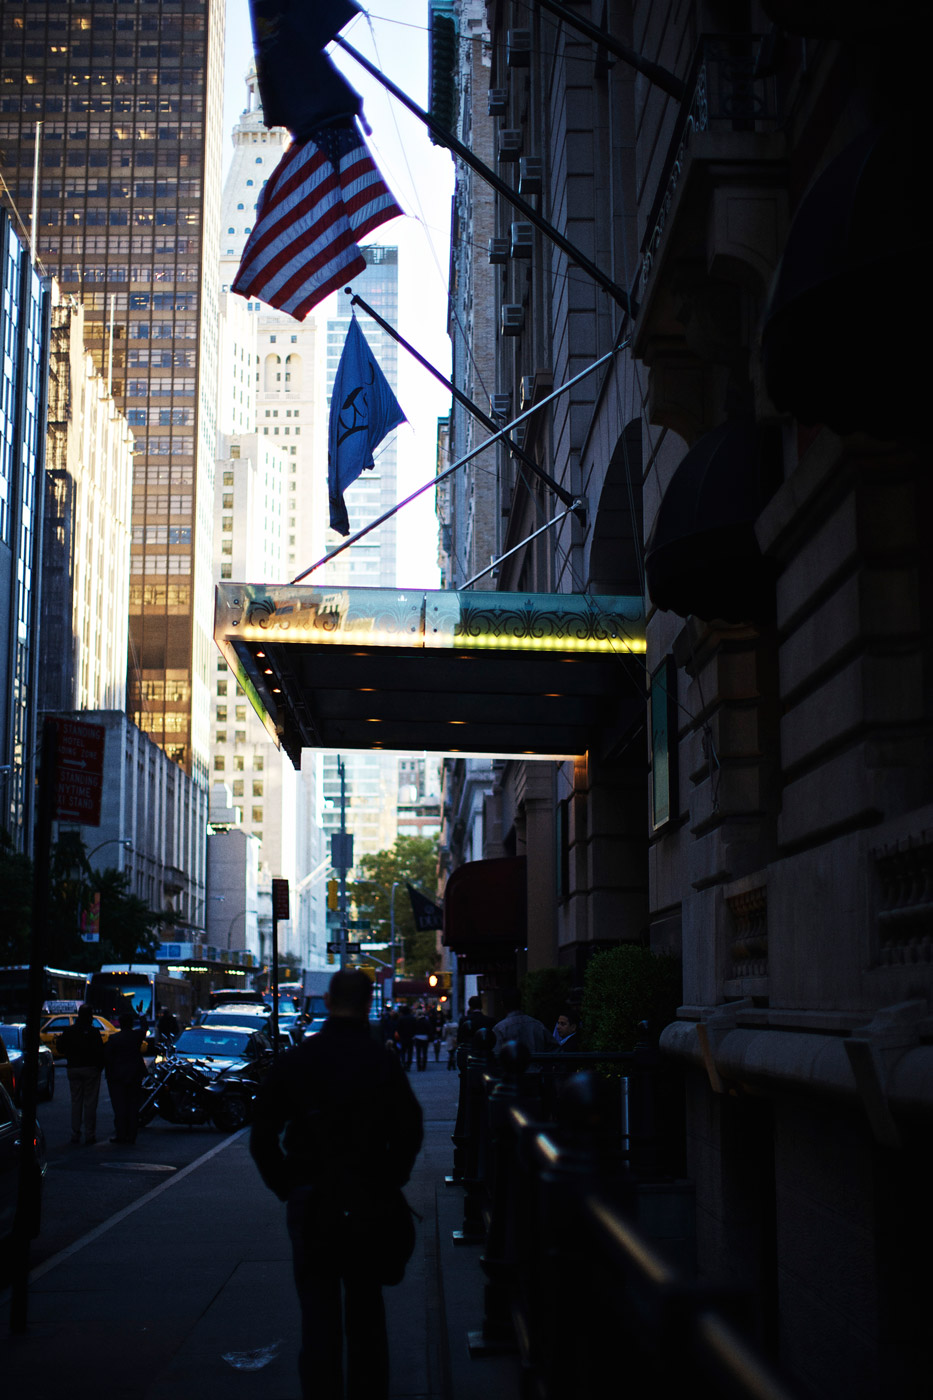 Hotels, Clubs and Bars located in Manhattan's NoMad District